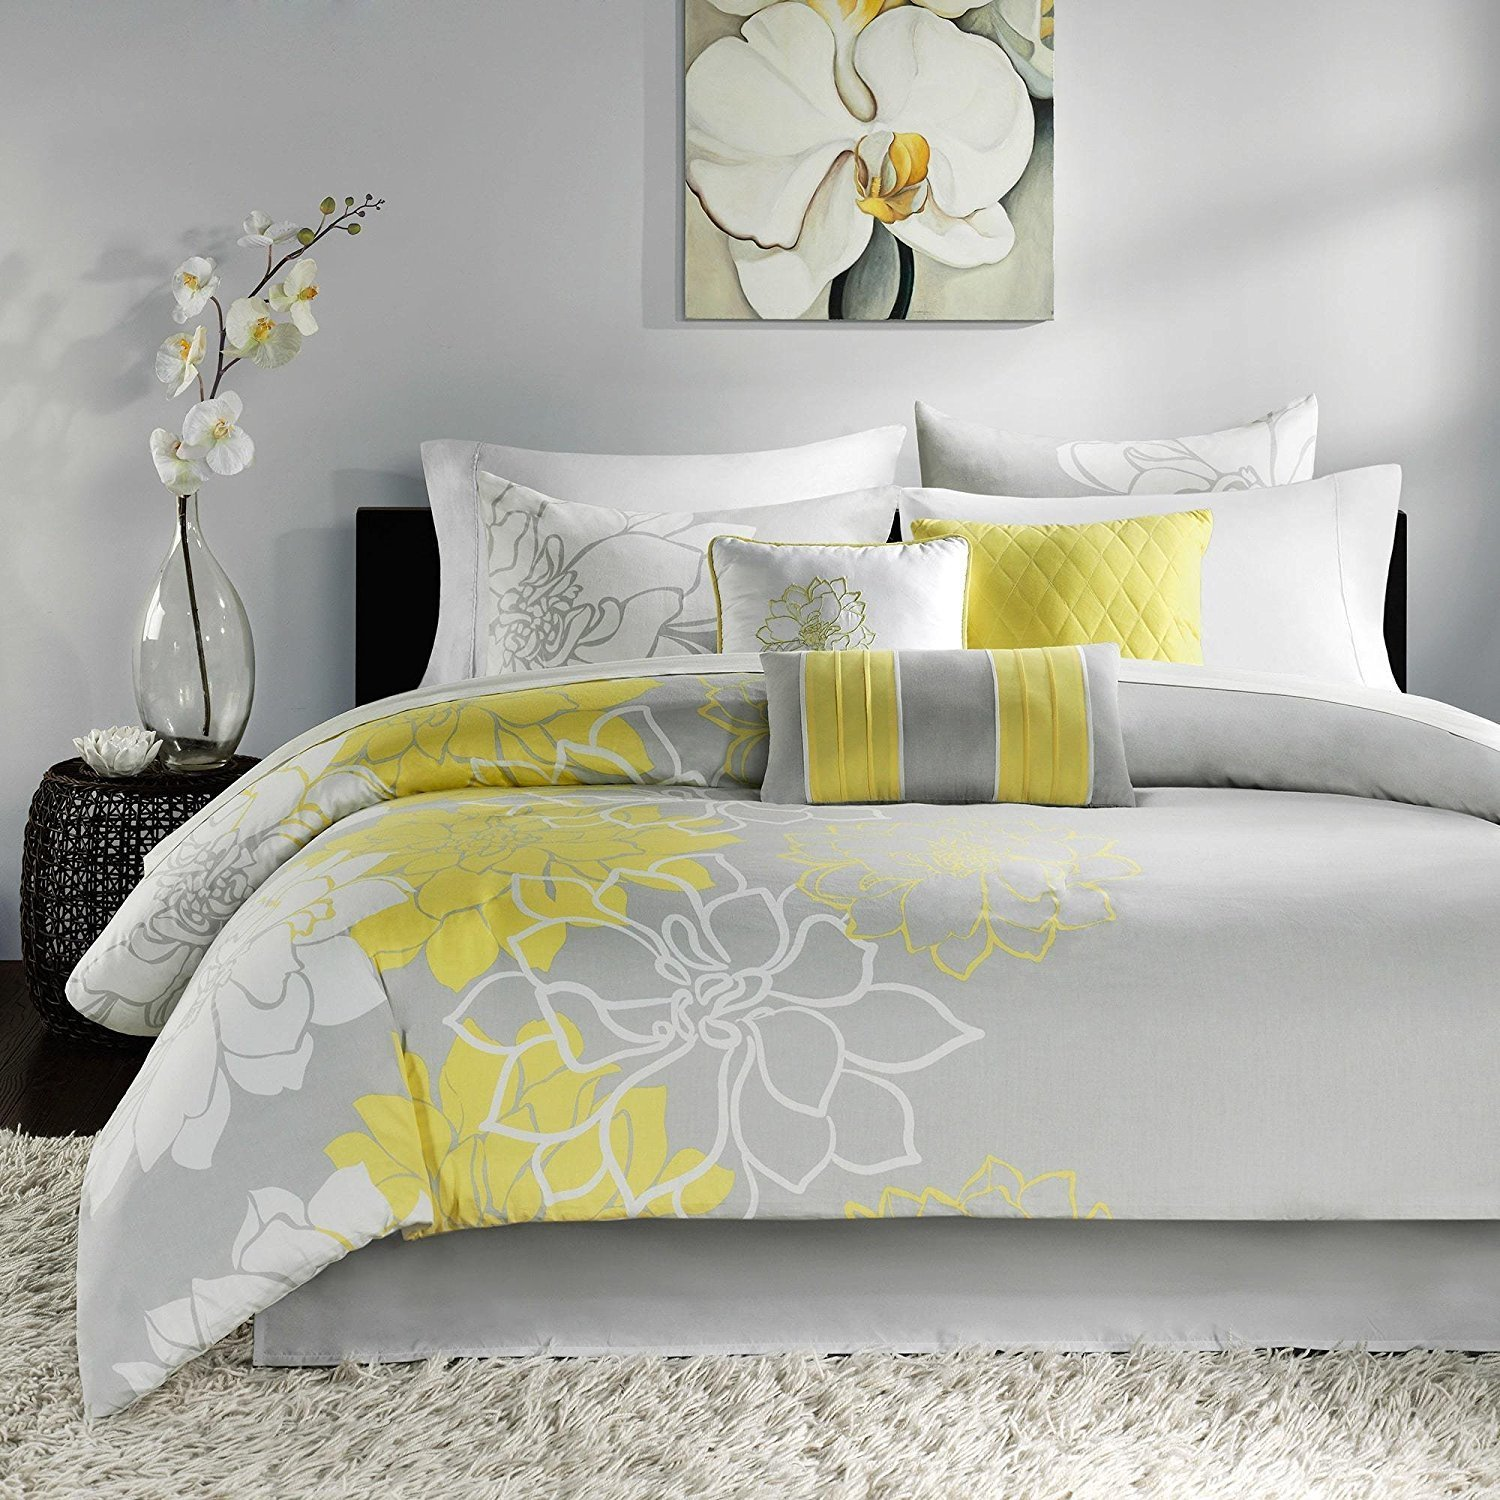 6pc Yellow Floral Twin Size Comforter Set, Cotton Polyester, Gray Lily Spring Flower Theme Sleek Modern Shabby Chic Gorgeous Bedding, Grey Vibrant Flowers Nature